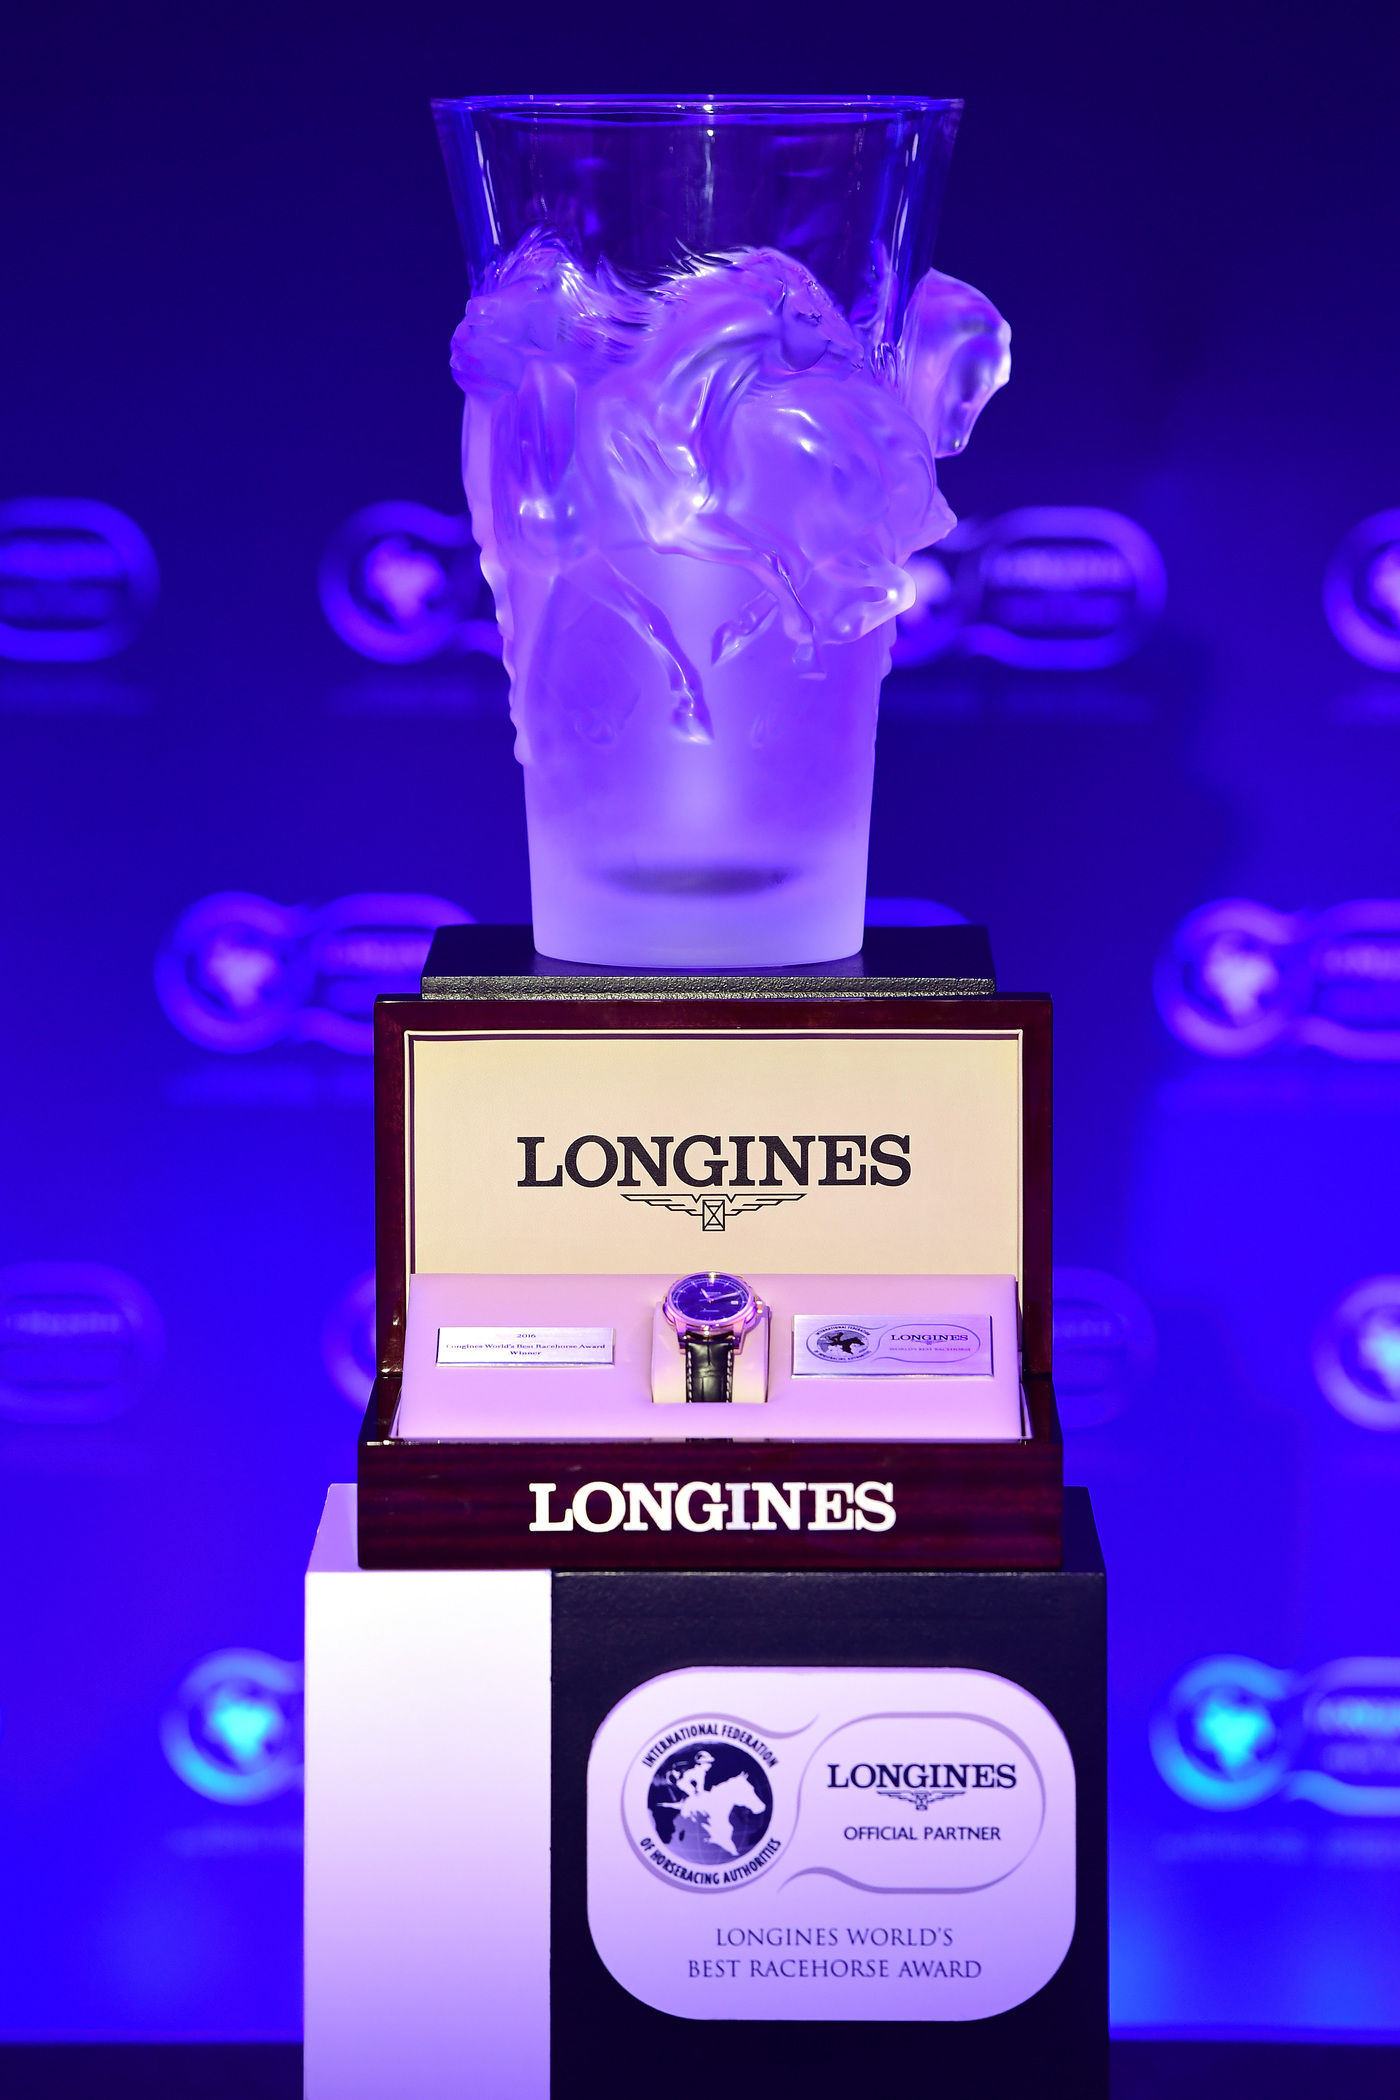 Longines Equestrian Event: Arrogate named the 2016 Longines World's Best Racehorse, while the Breeders' Cup Classic was crowned 2016 Longines World's Best Horse Race 8